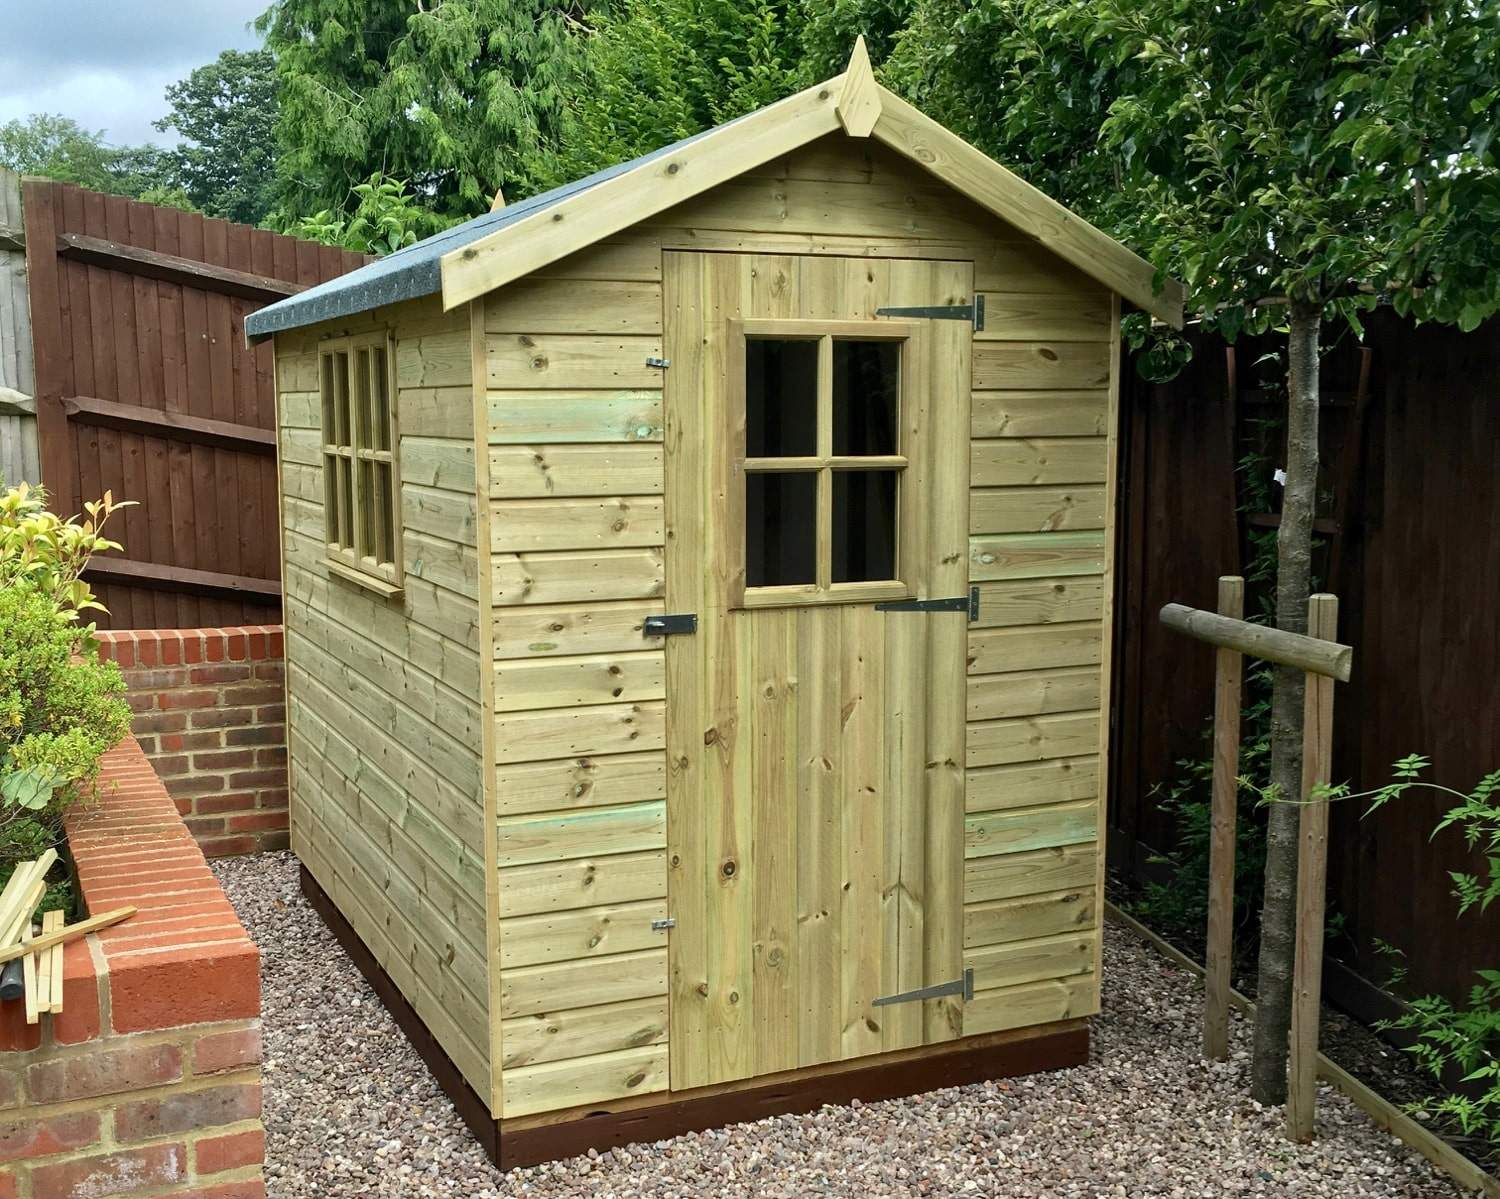 Wood is the perfect material for your shed workshop or summerhouse subtly blending in with its natural surroundings whilst offering unparalleled